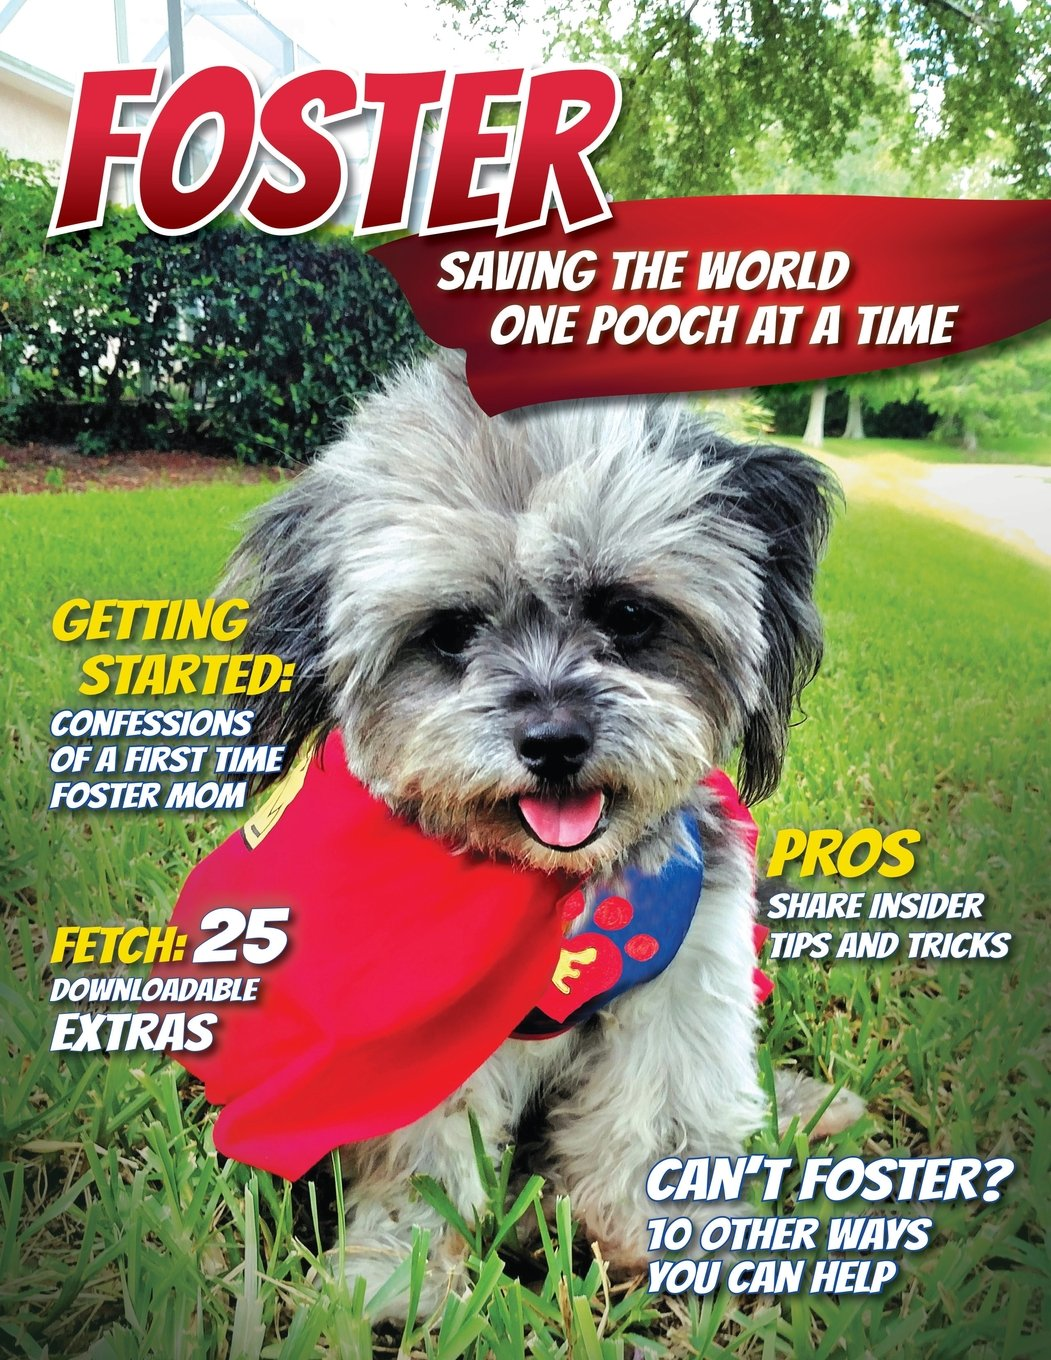 Download Foster: Saving the World One Pooch at a Time or 10 Other Ways You Can Help! pdf